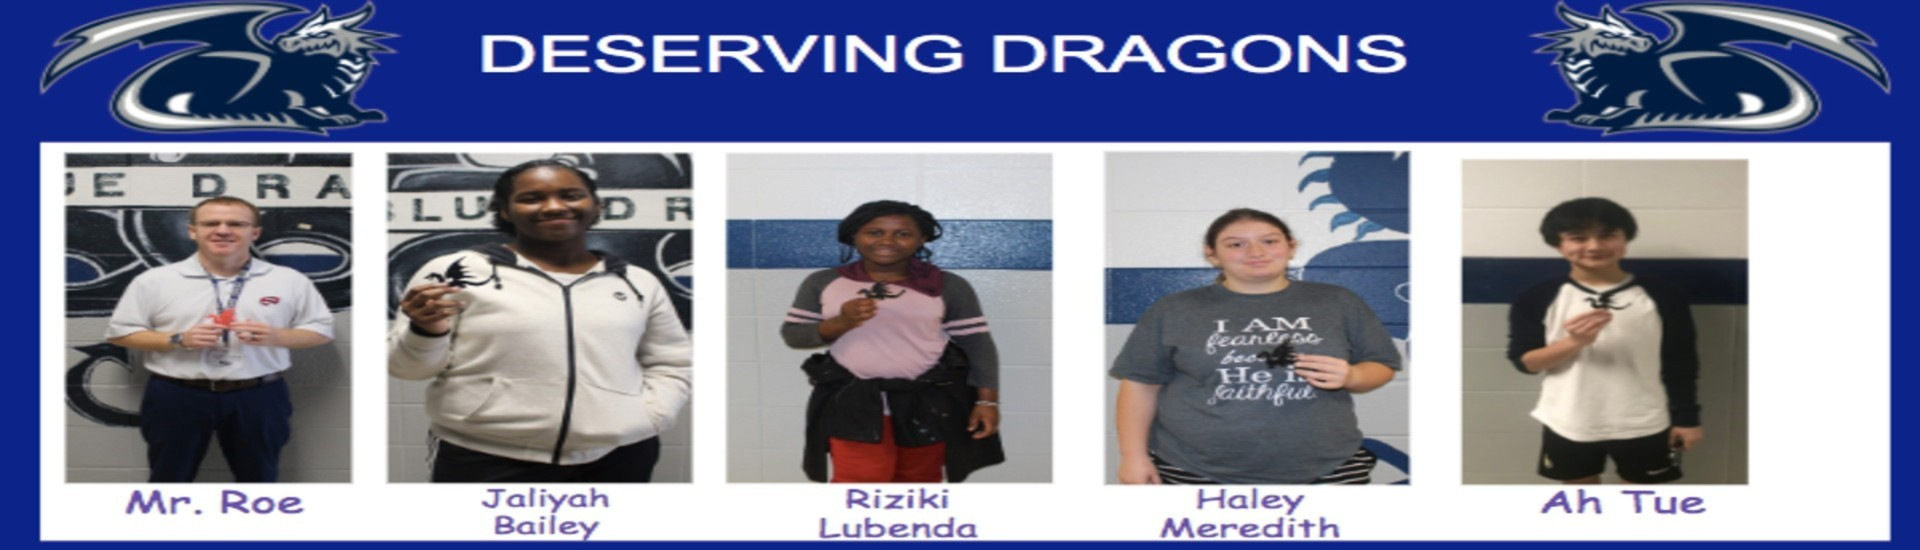 Congrats to our October Deserving Dragons!